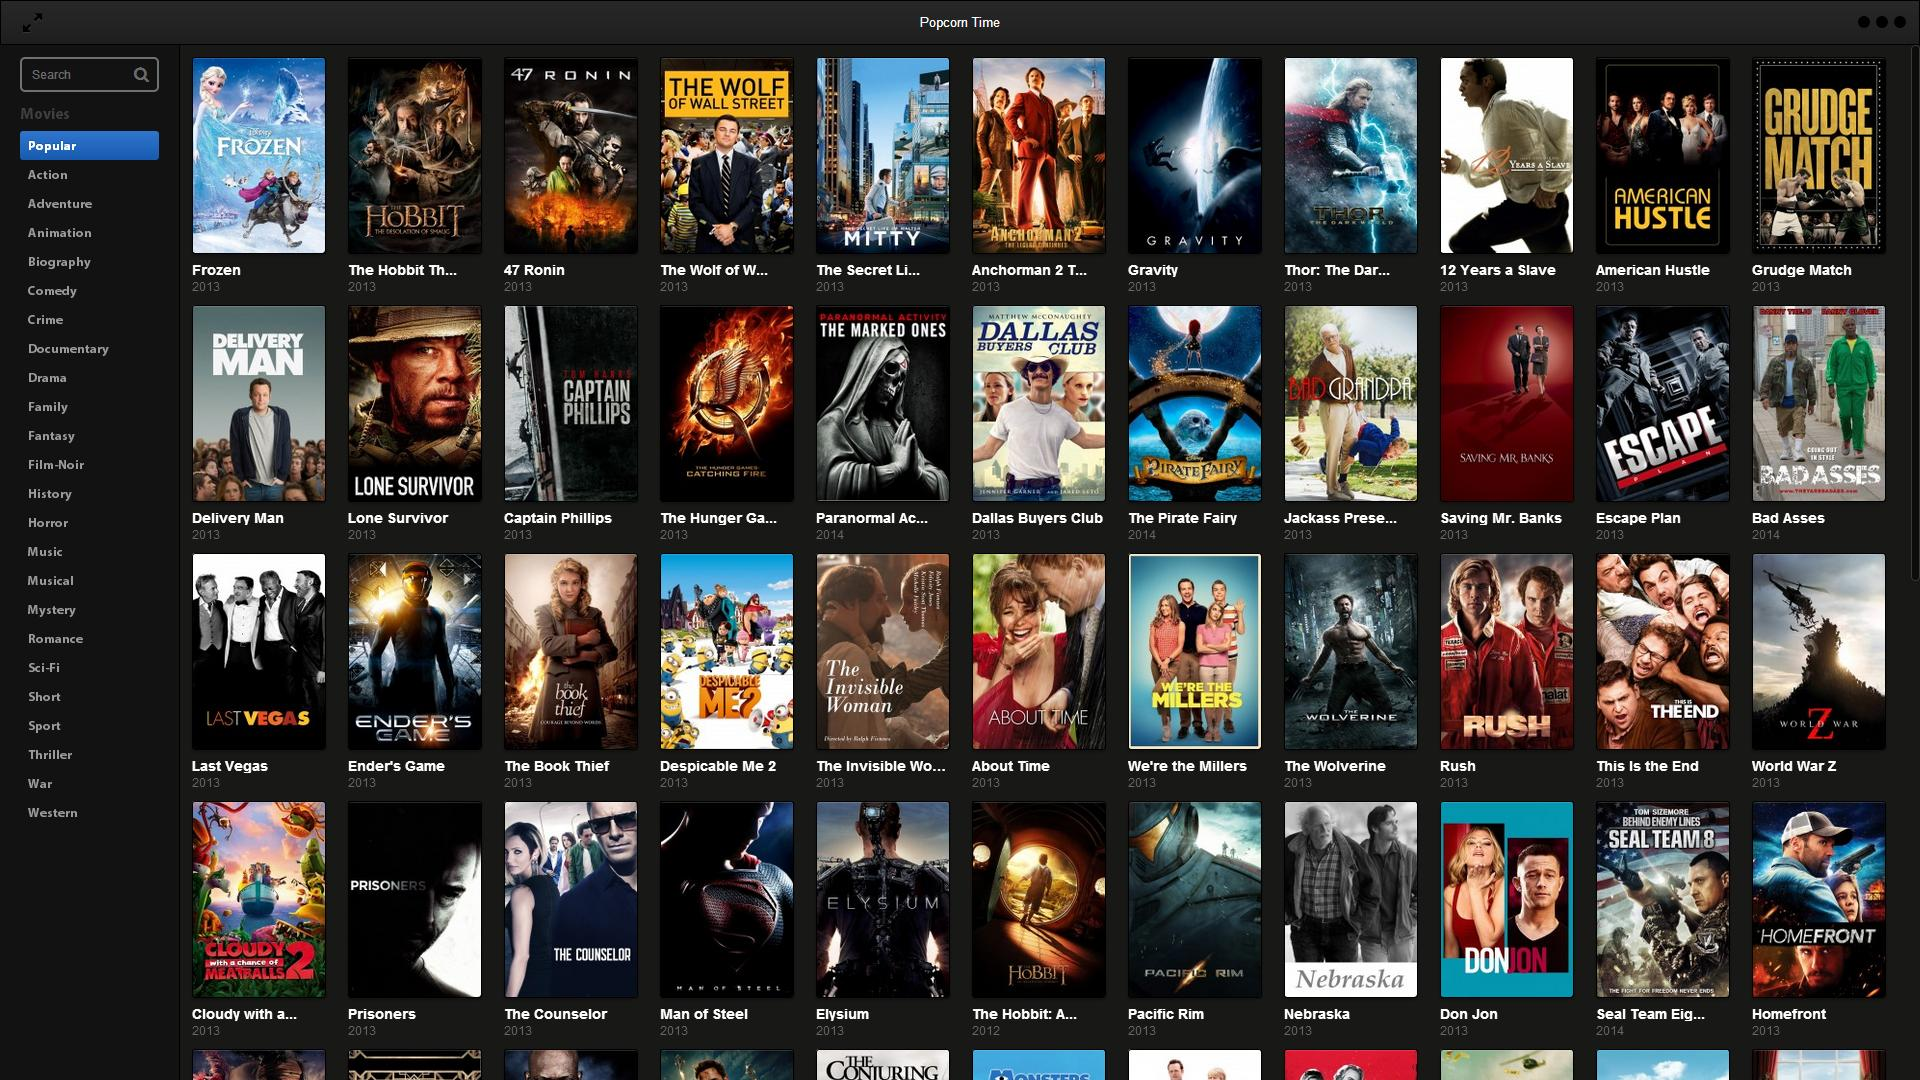 Popcorn Time sotto sequestro, la fine del Netflix pirata?